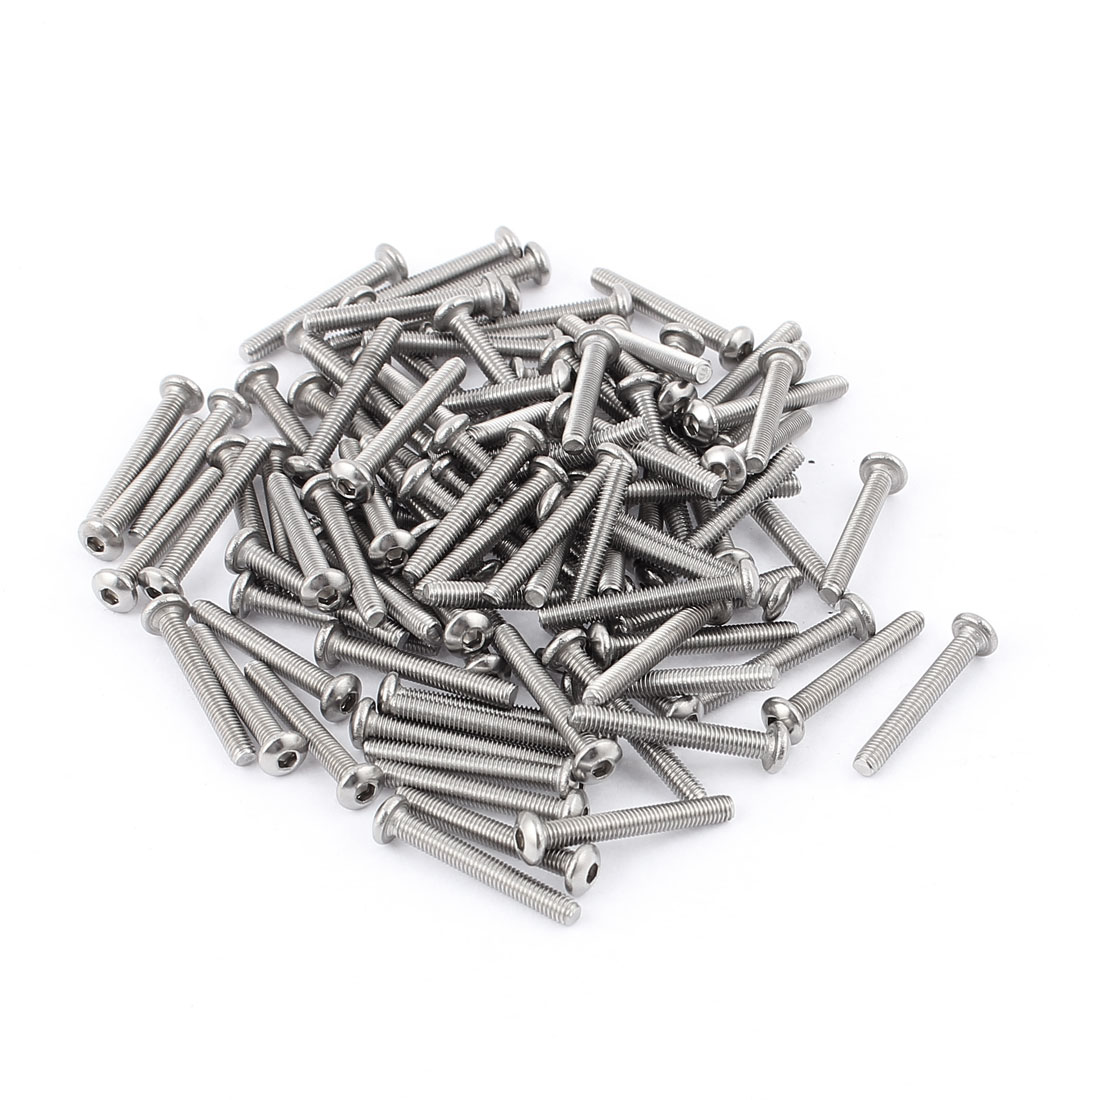 M3 x 22mm 304 Stainless Steel Hex Socket Button Head Bolts Screws 100pcs